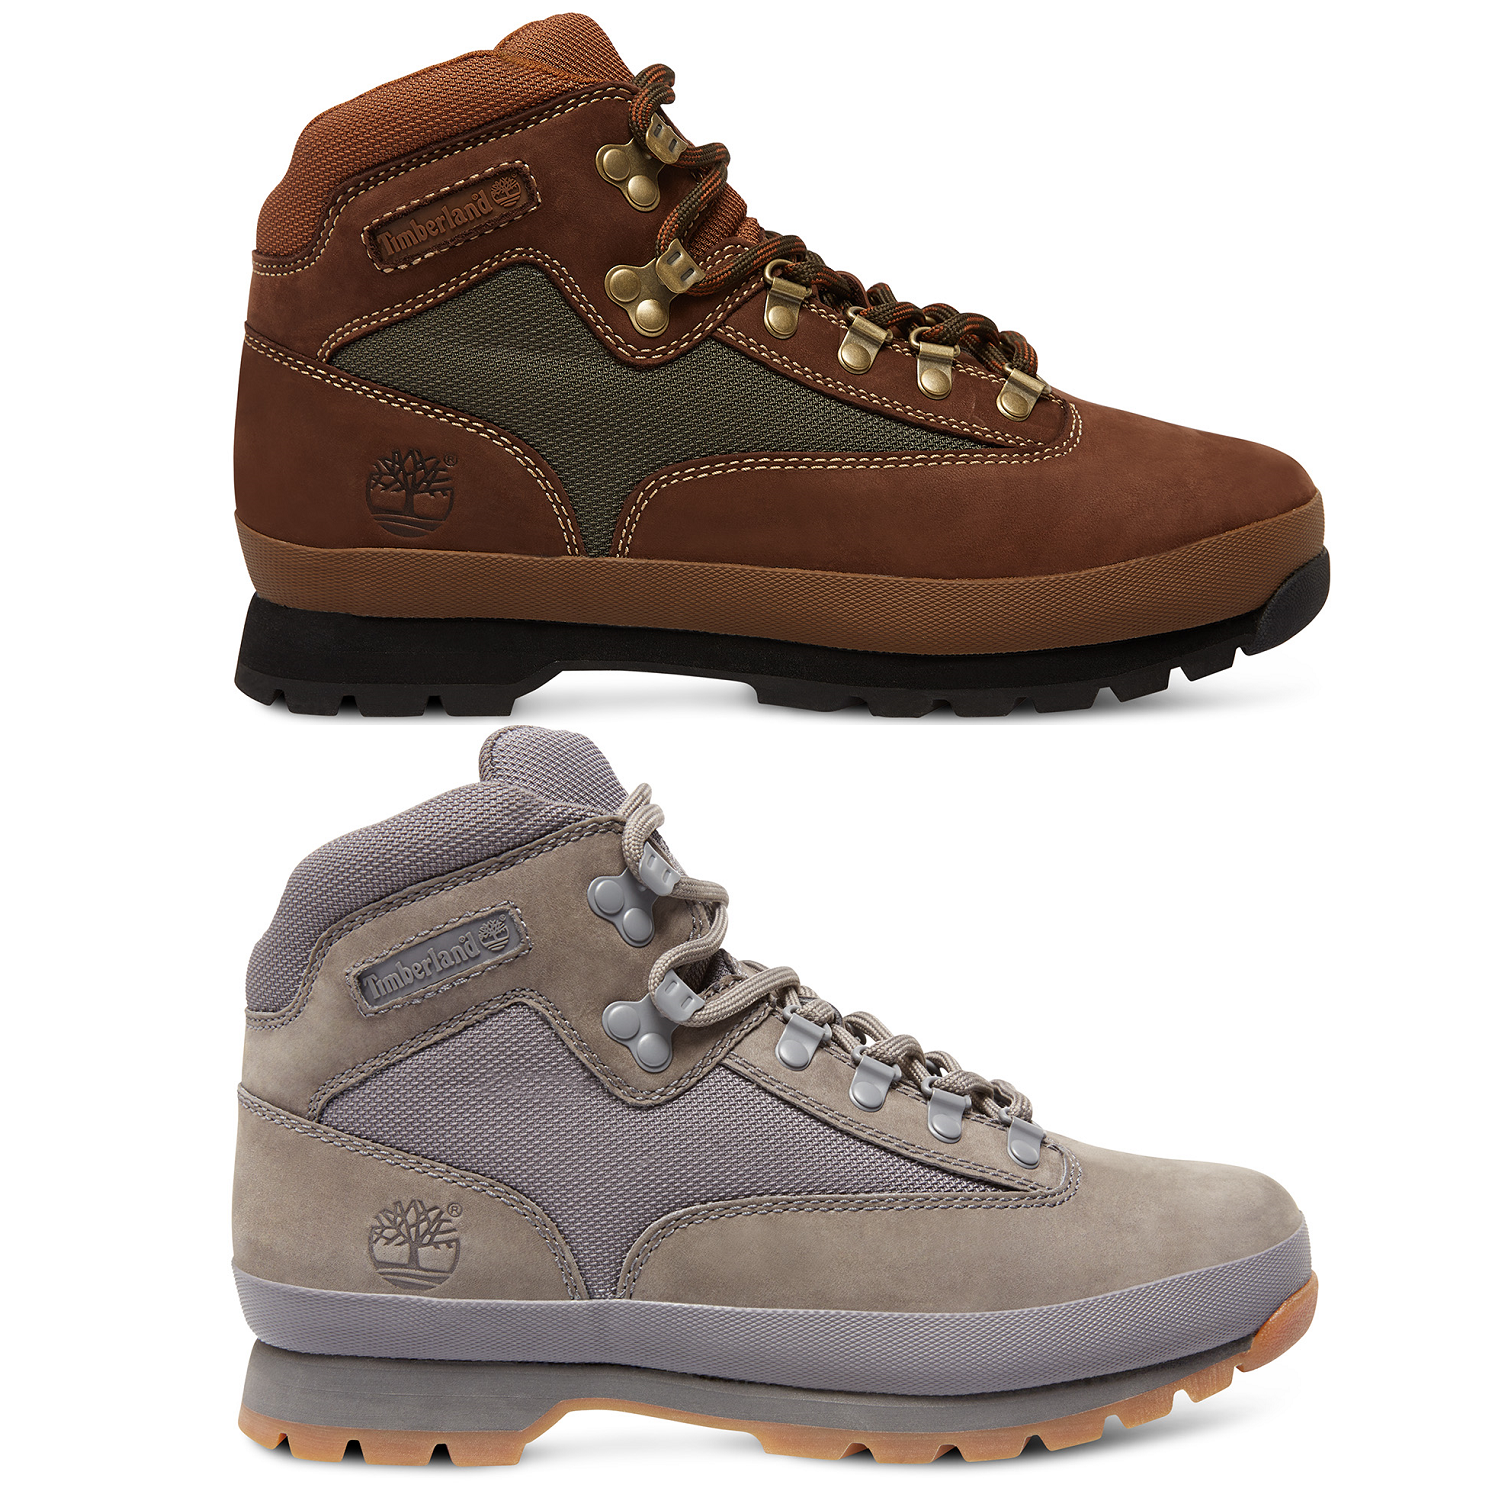 Timberland A11UL A11V8 Euro Hiker F/L Mid Boot different colors